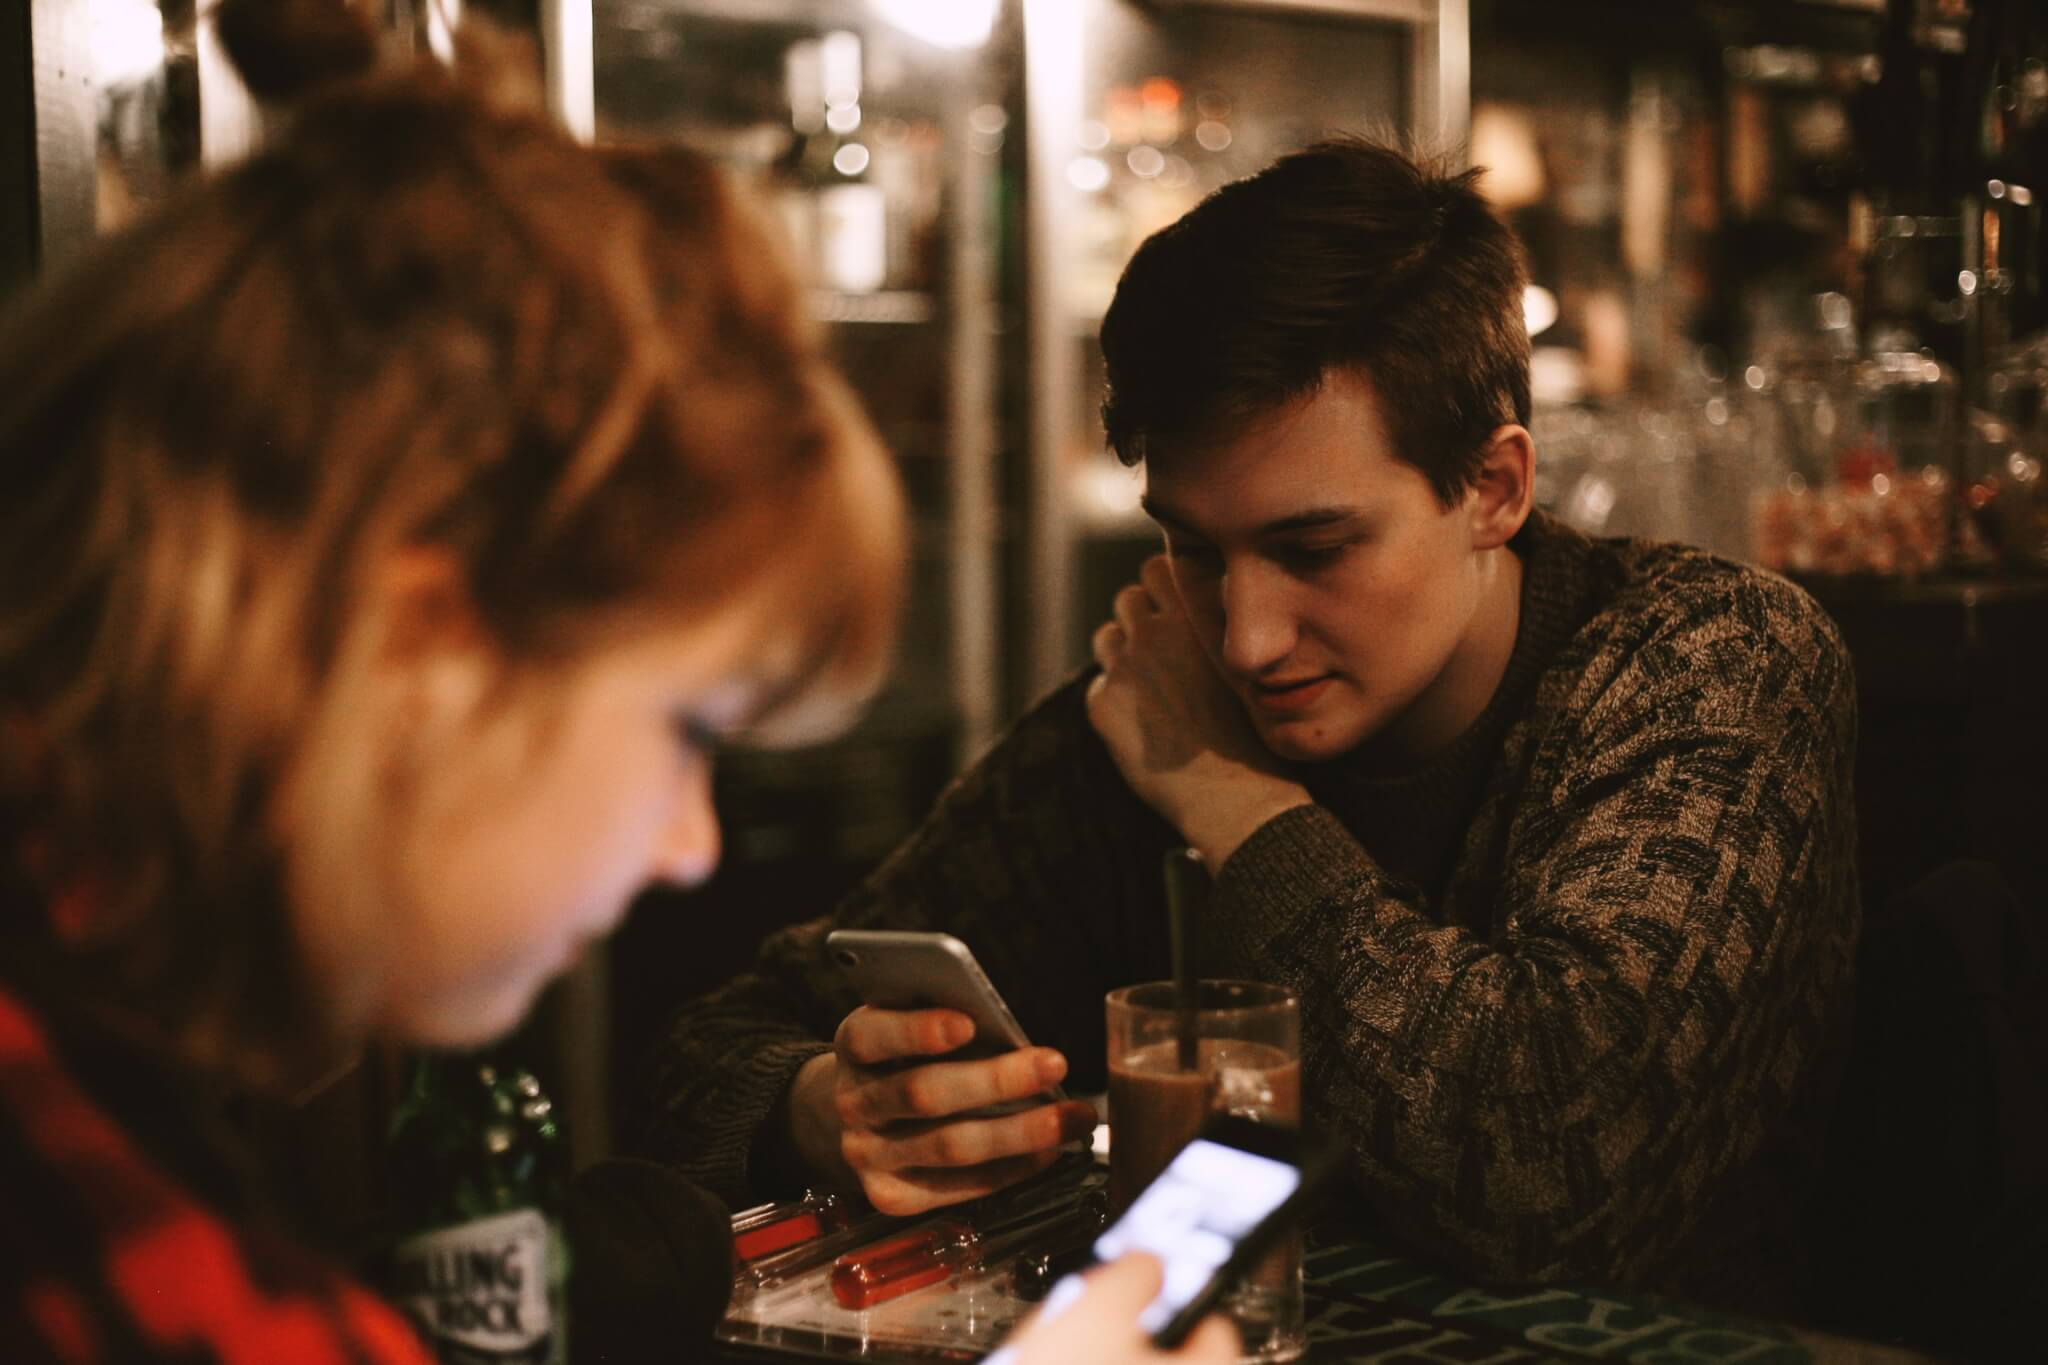 Man and women on phone whilst out socialising